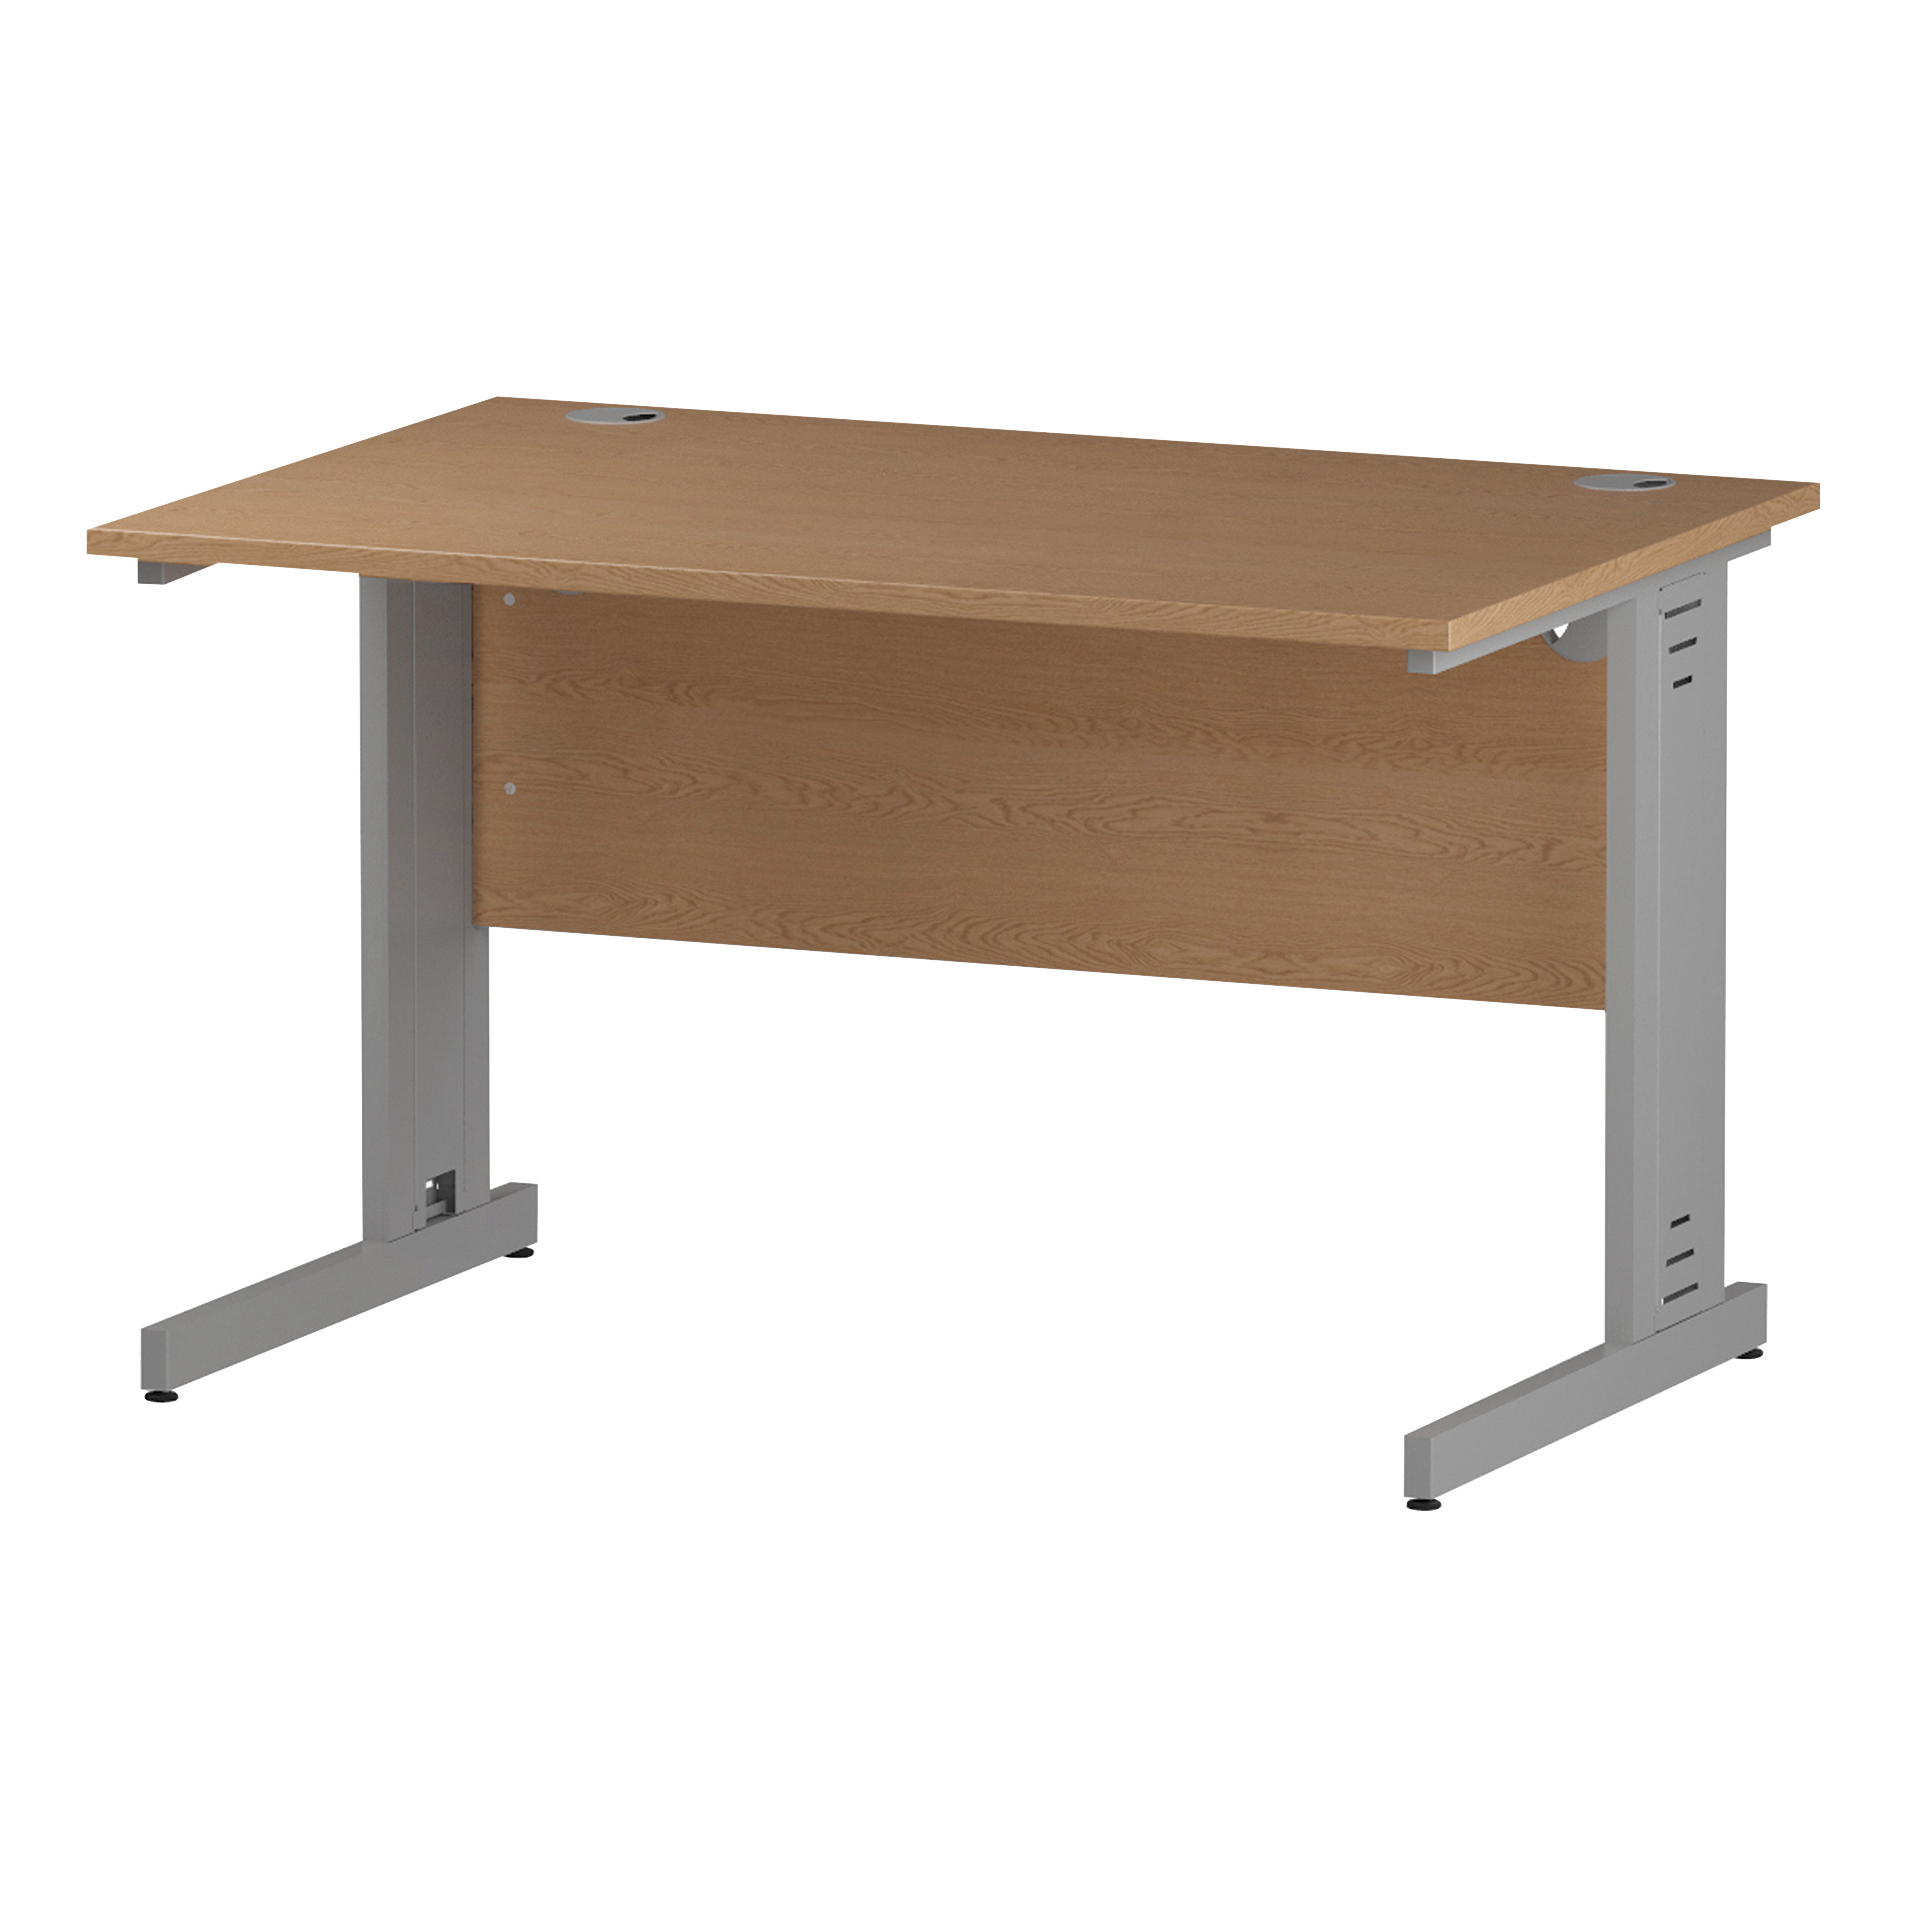 Trexus Rectangular Desk Silver Cable Managed Leg 1200x800mm Oak Ref I000850